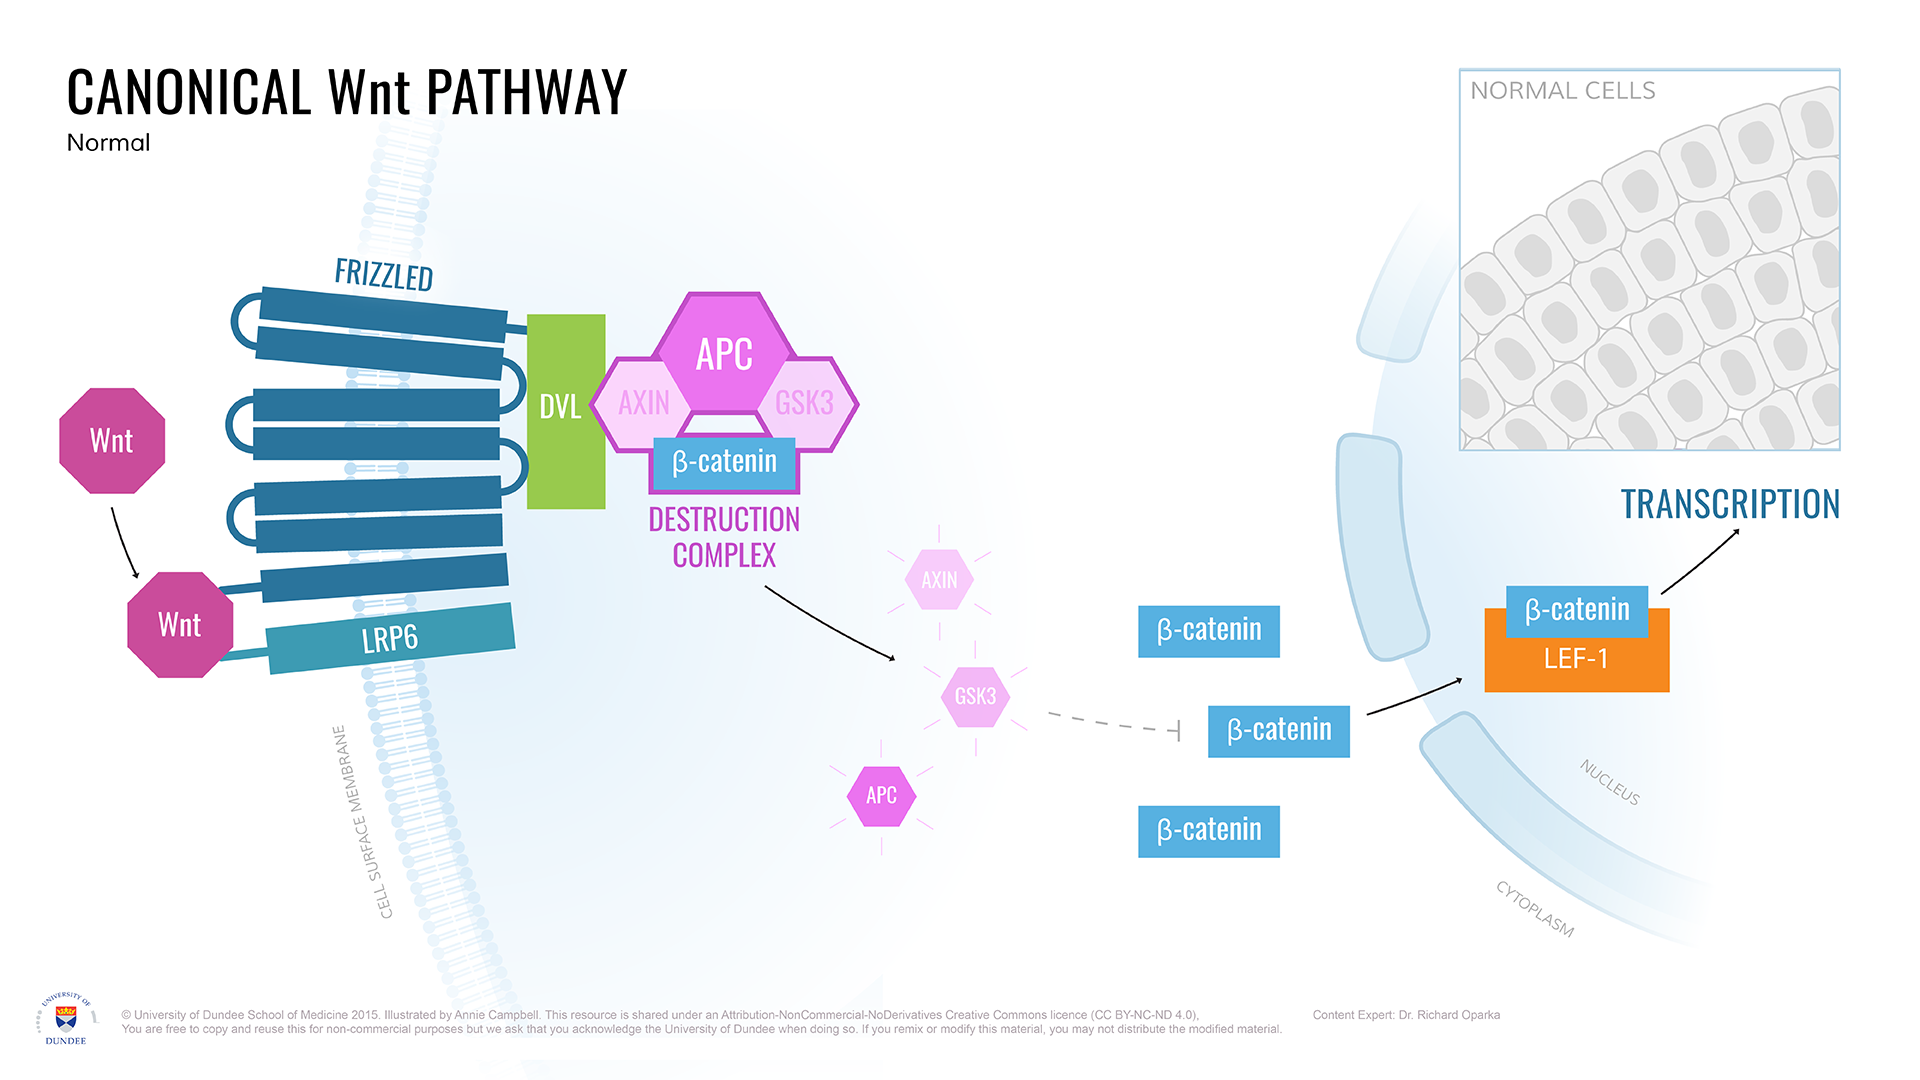 Canonical_Wnt_pathway_Normal.png